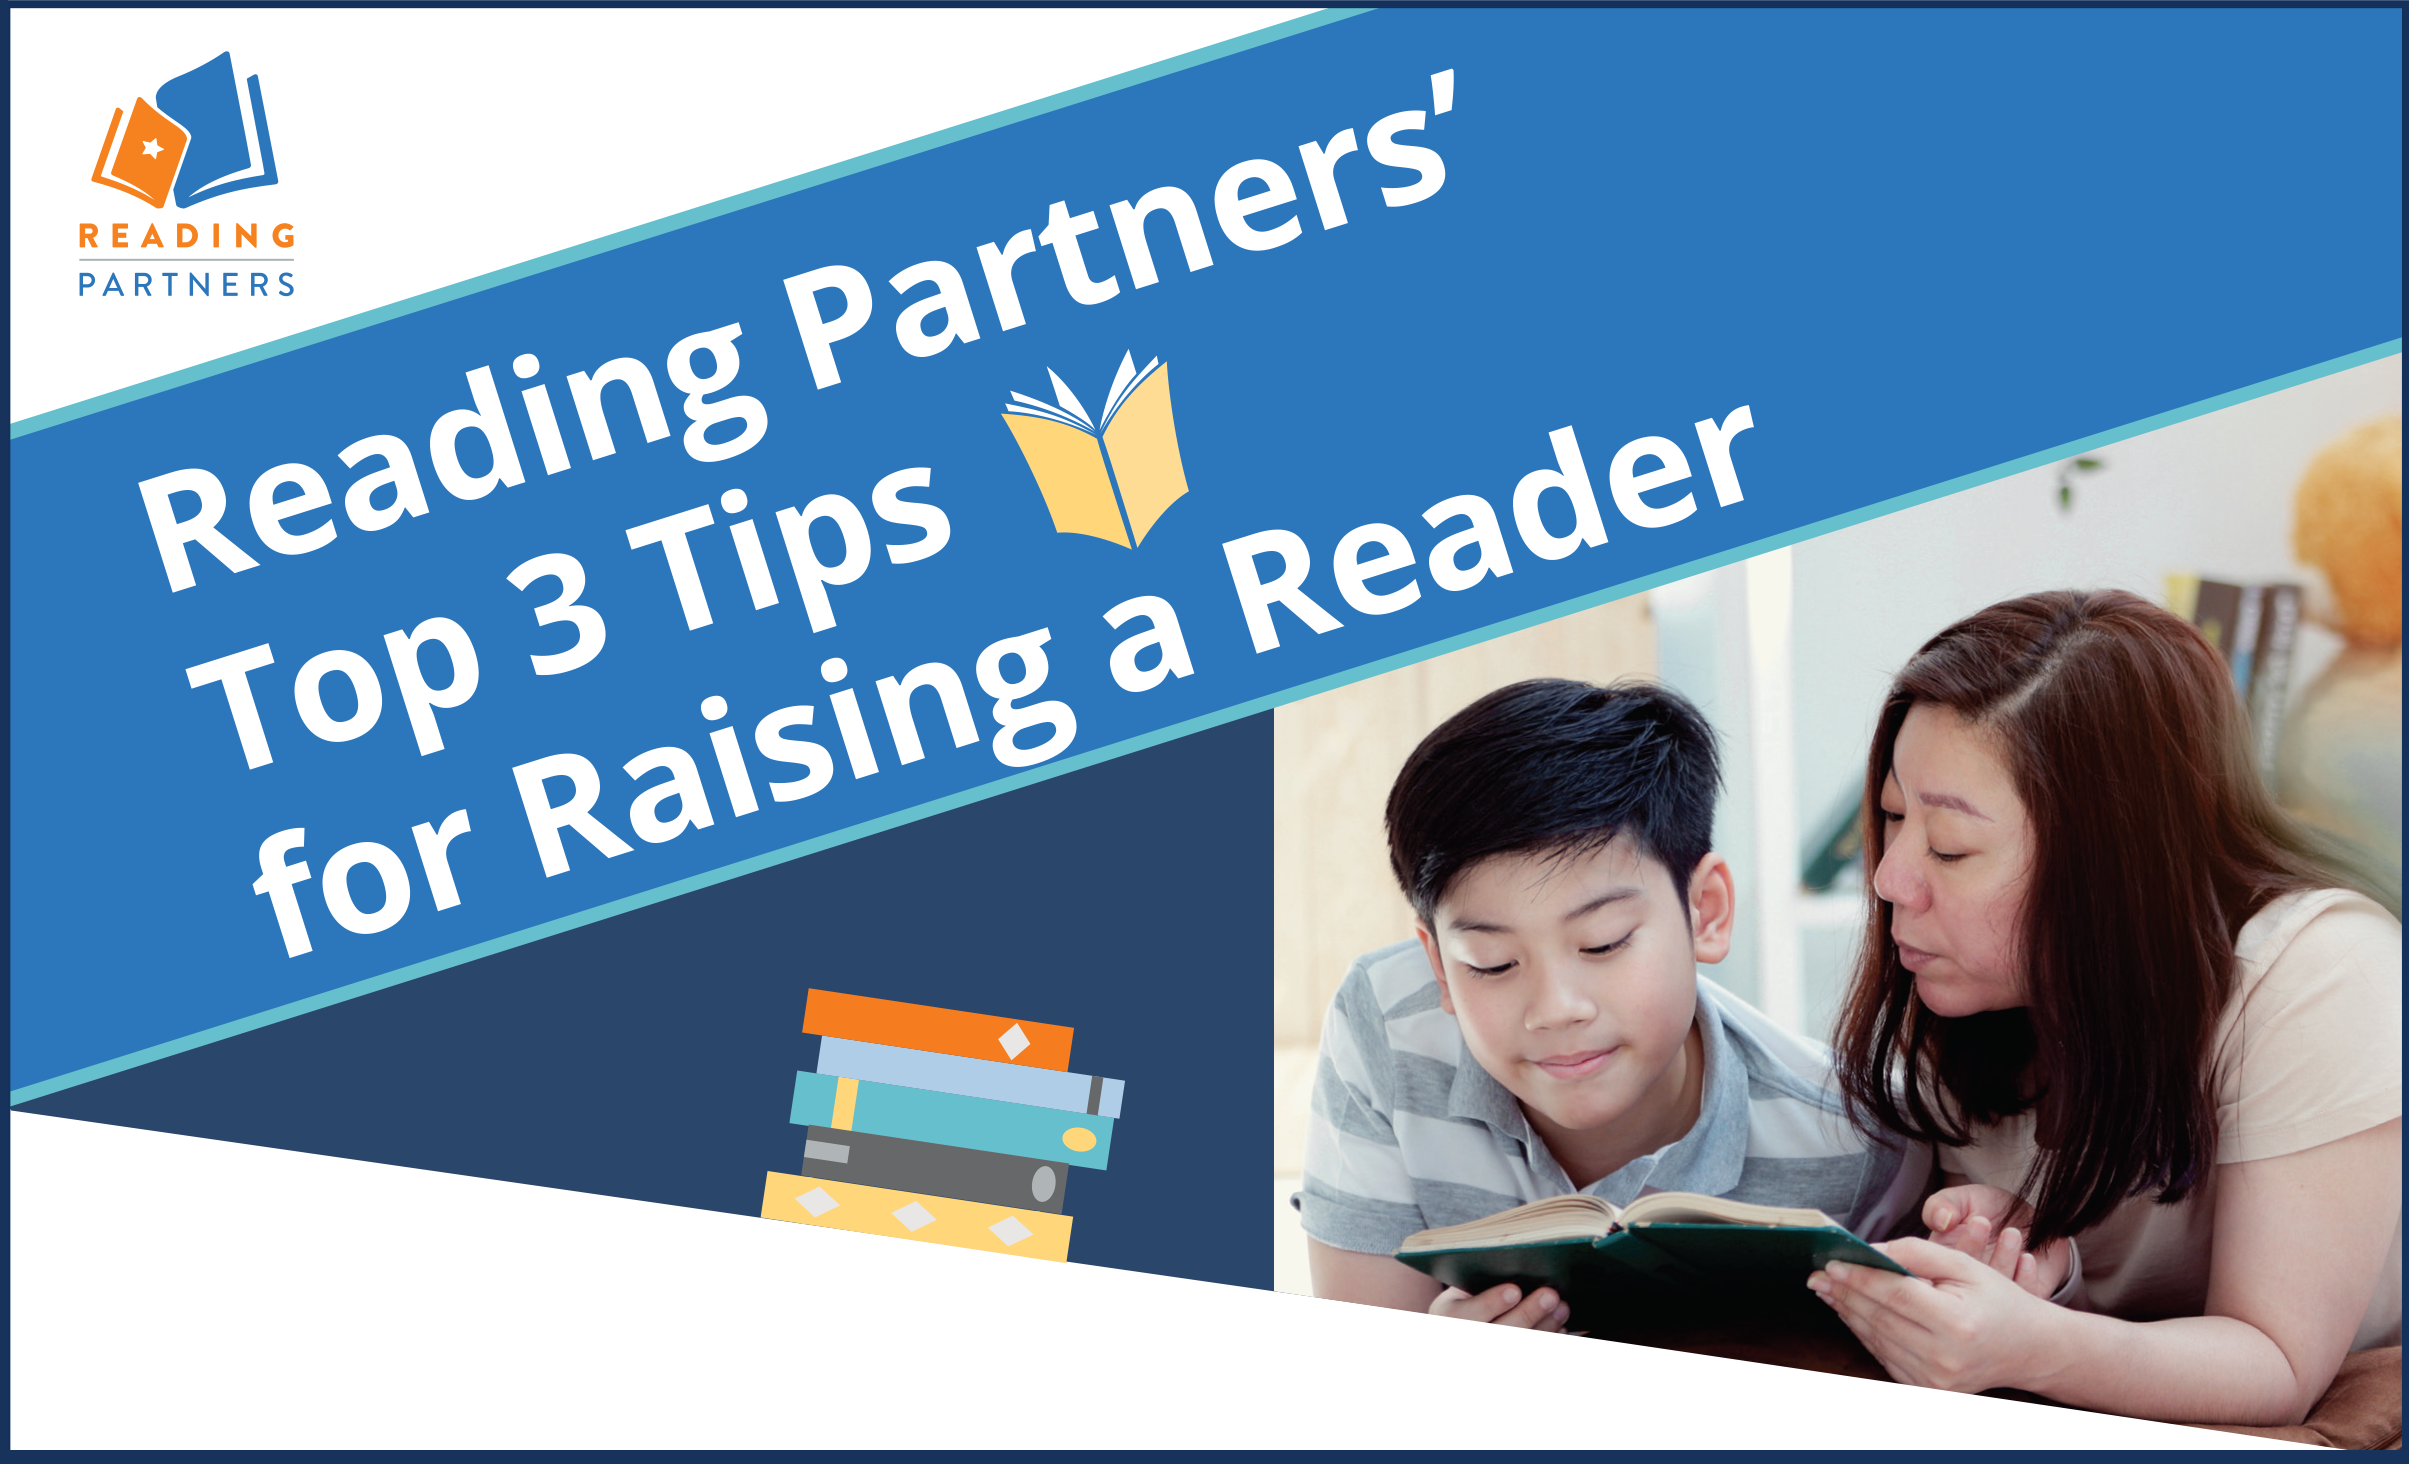 Reading Partners' Top 3 Tips for Raising a Reader